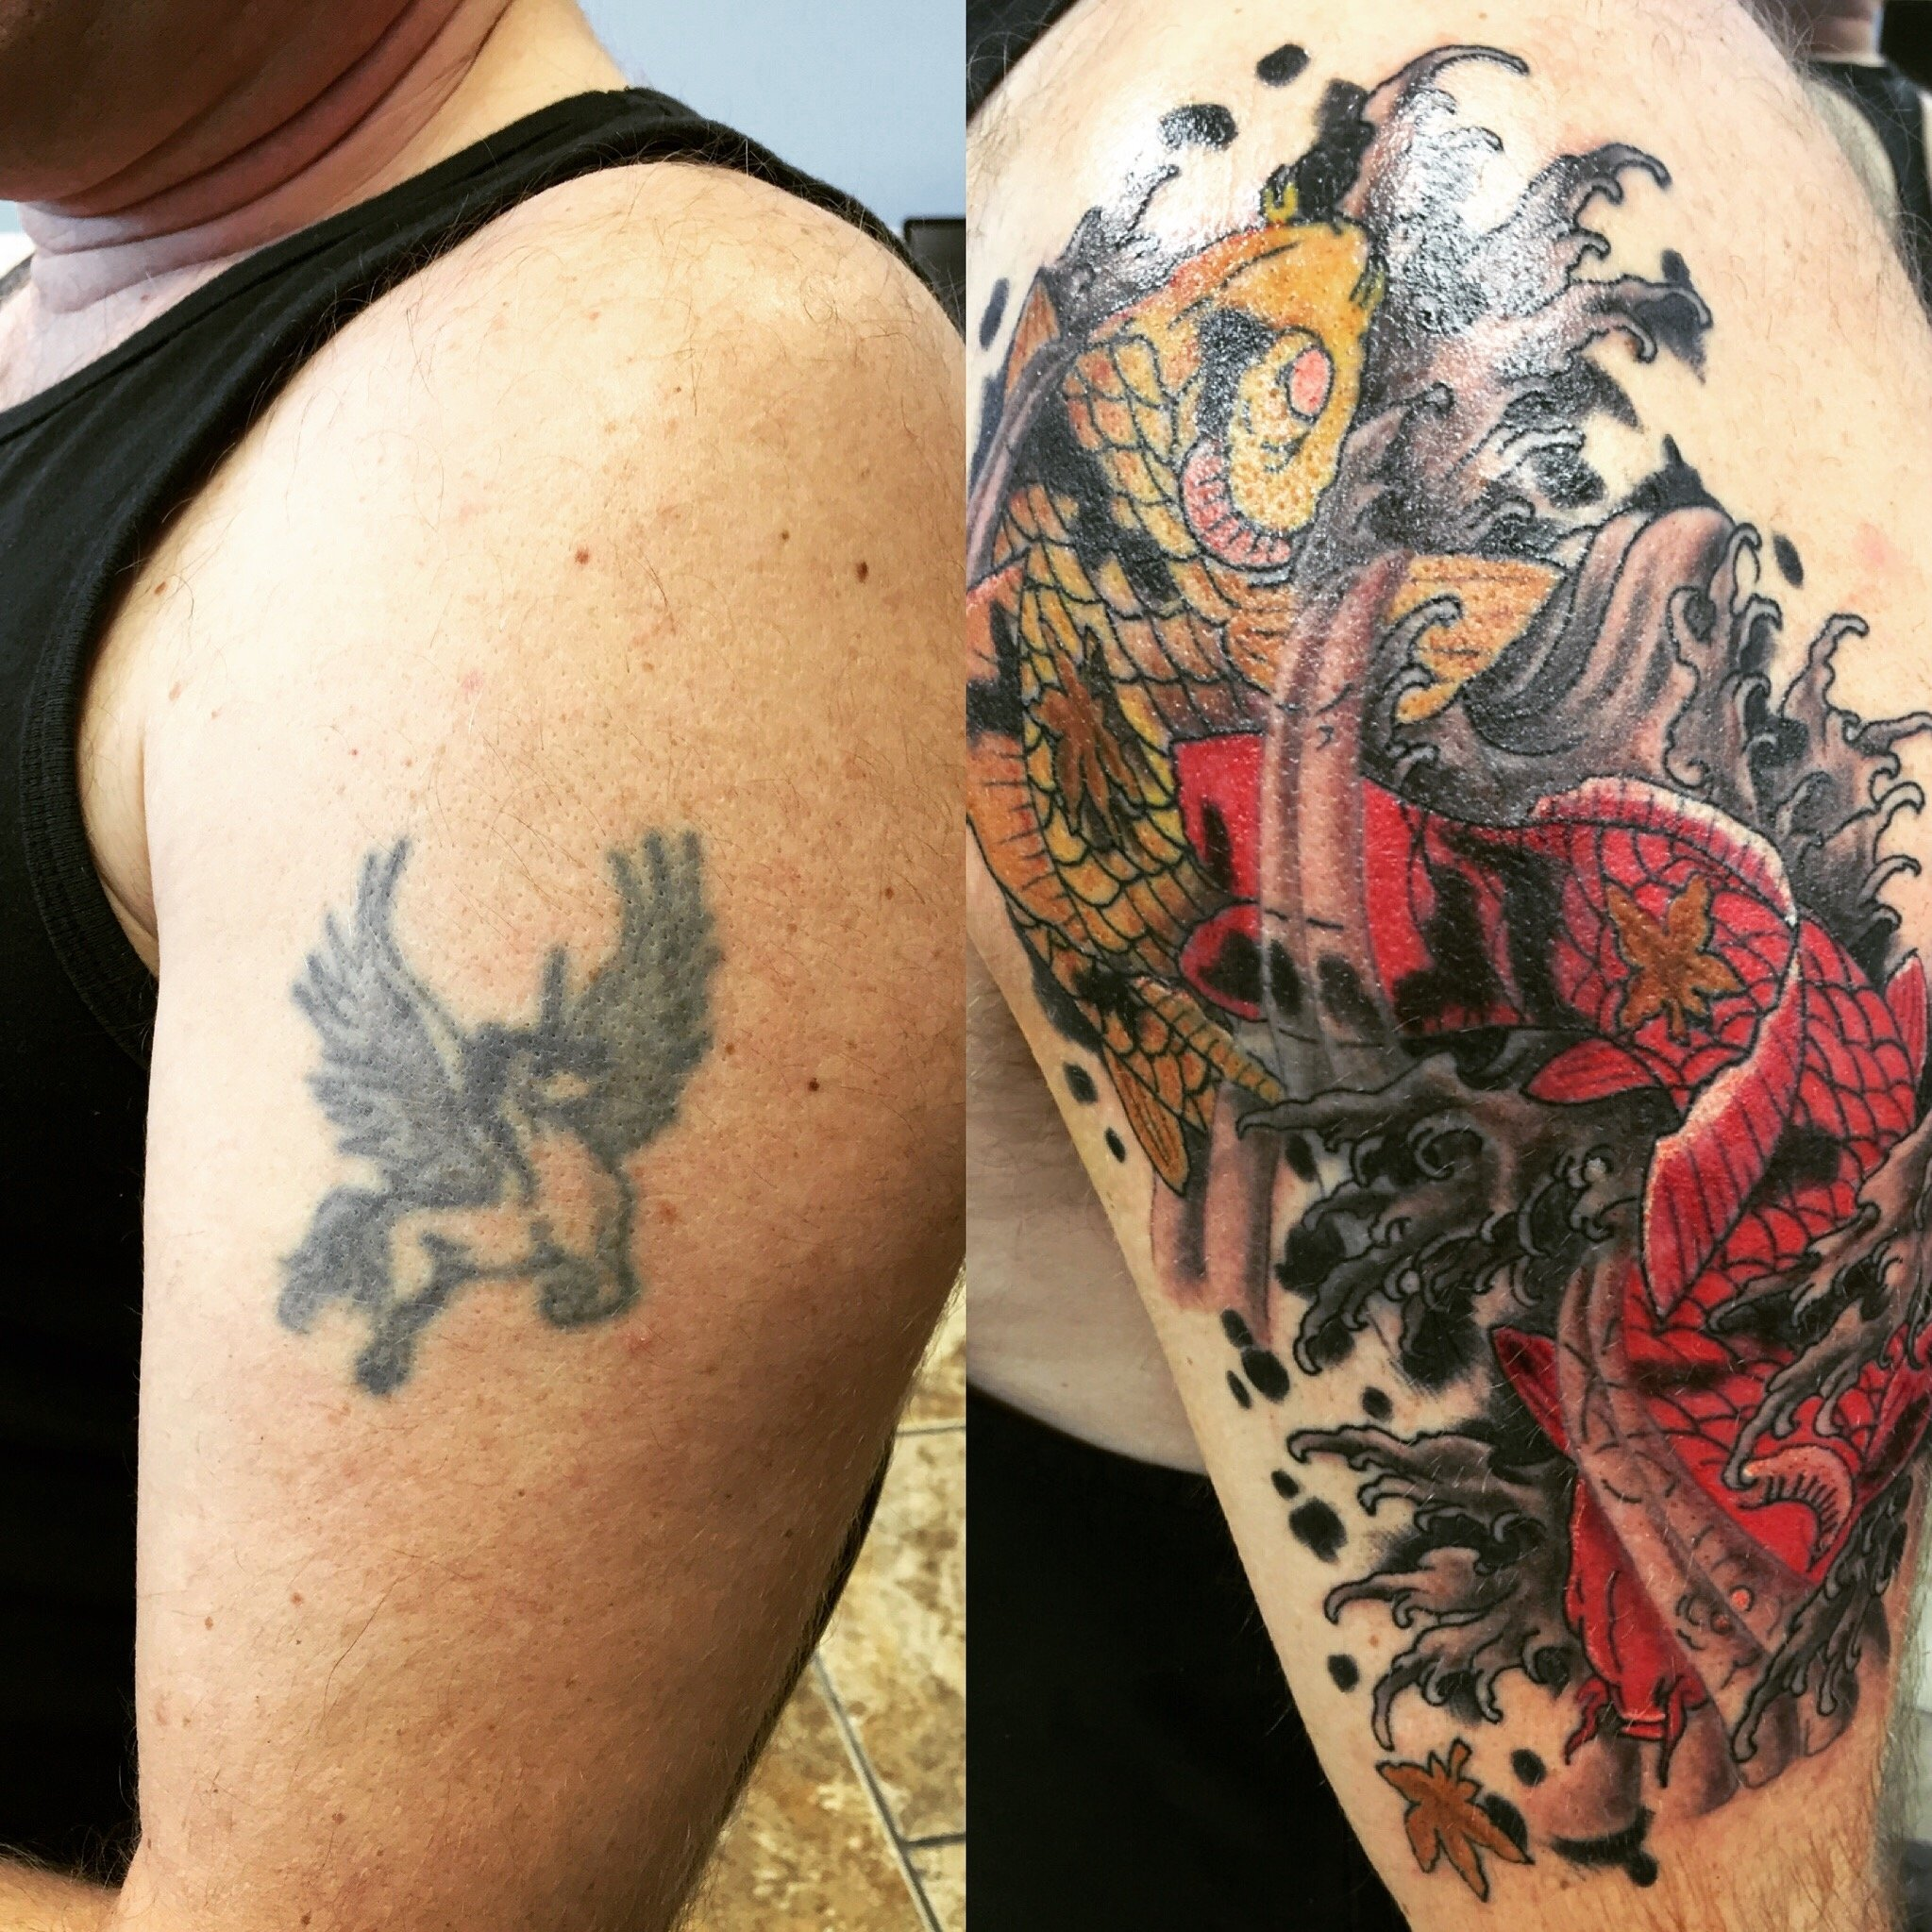 10 Unique Tattoo Cover Up Ideas For Work before and after covered up an old beat bad idea thanks to 2020